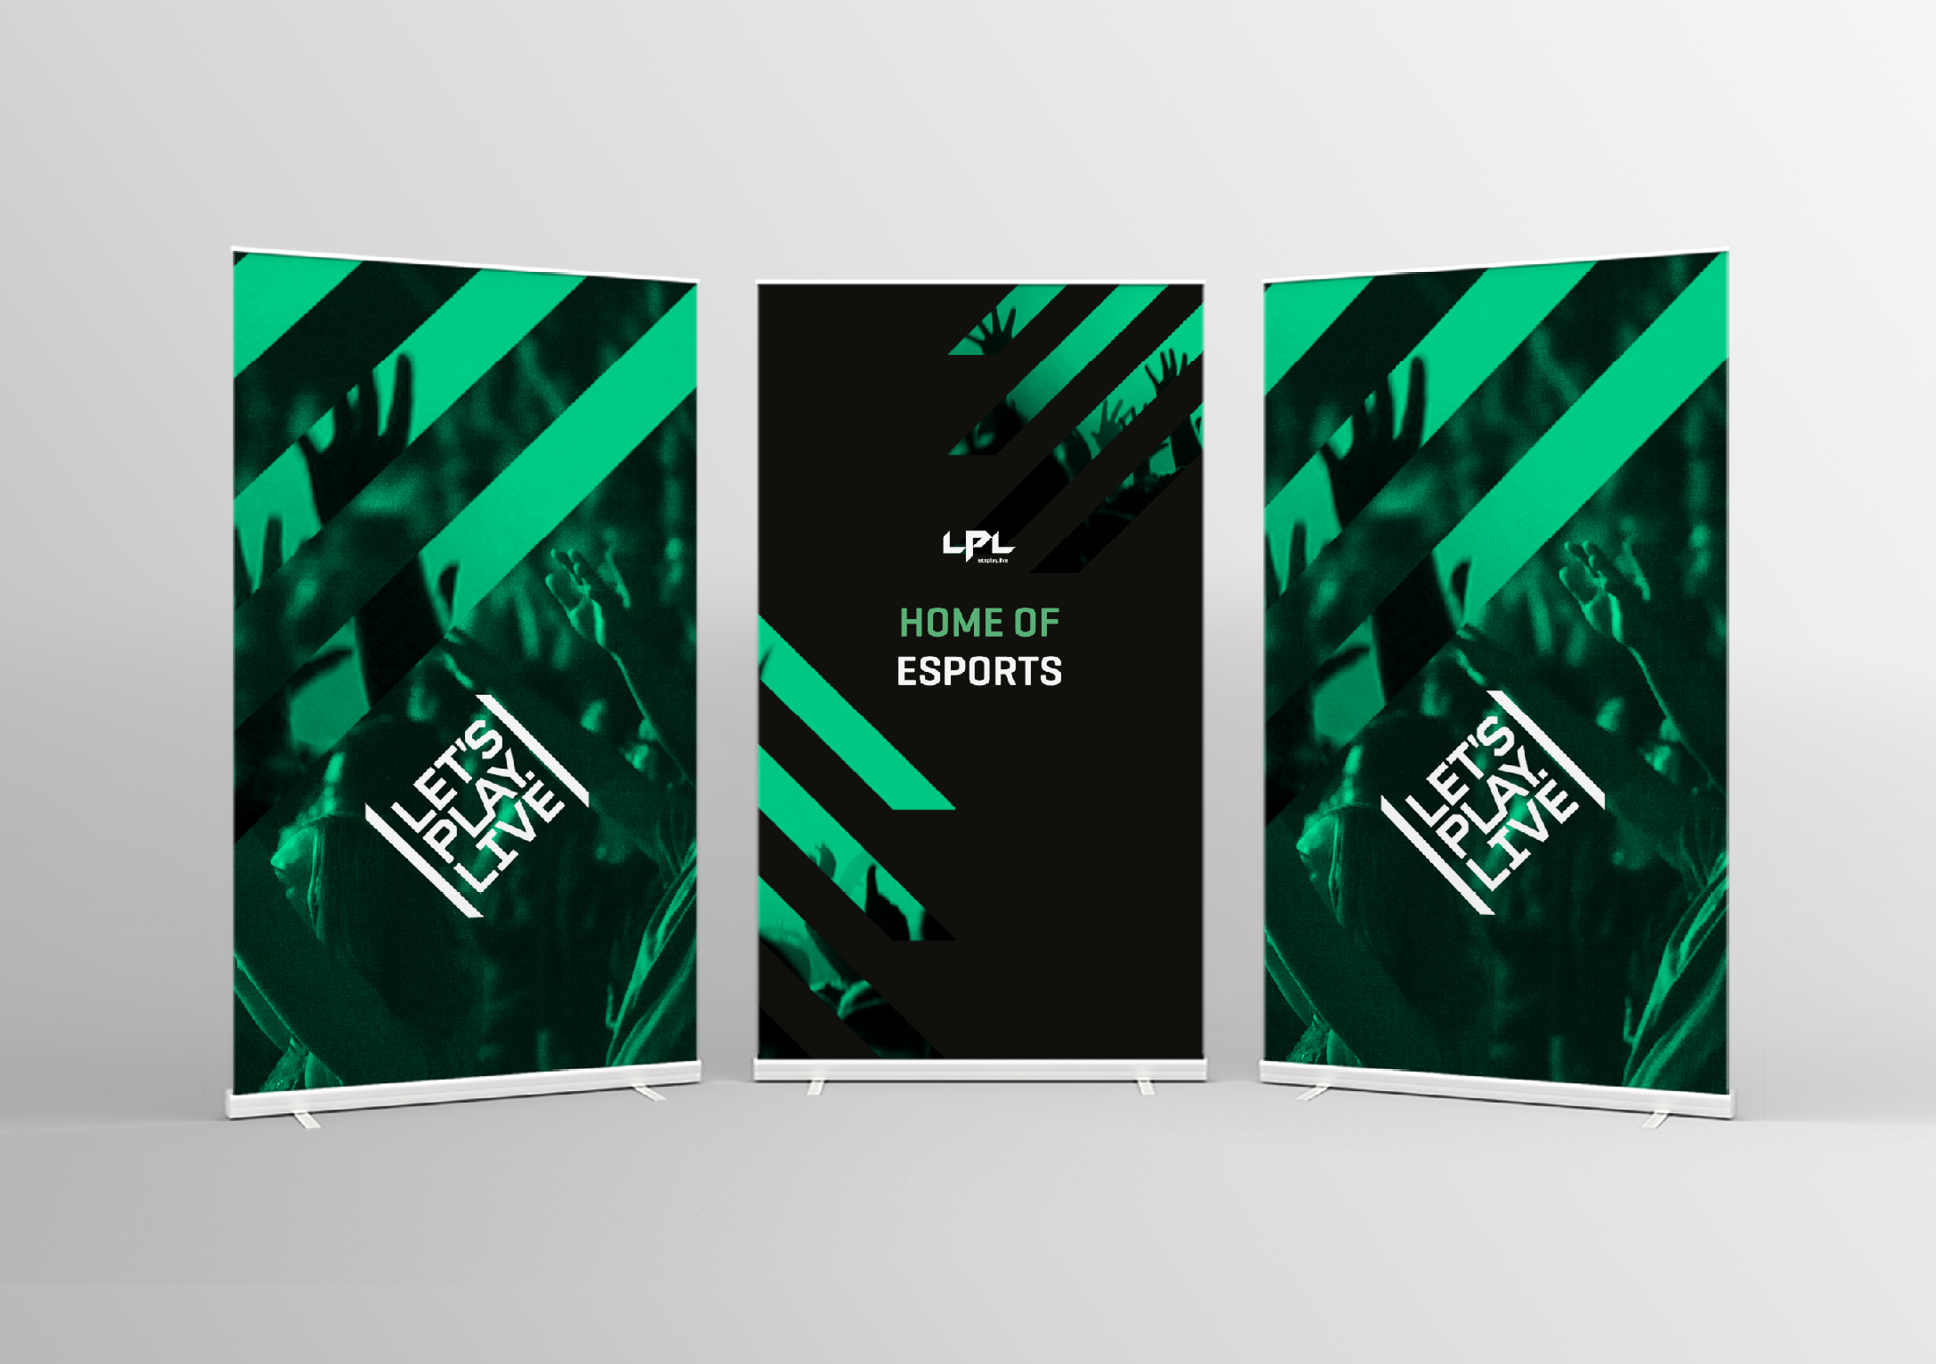 LPL pull-up banners